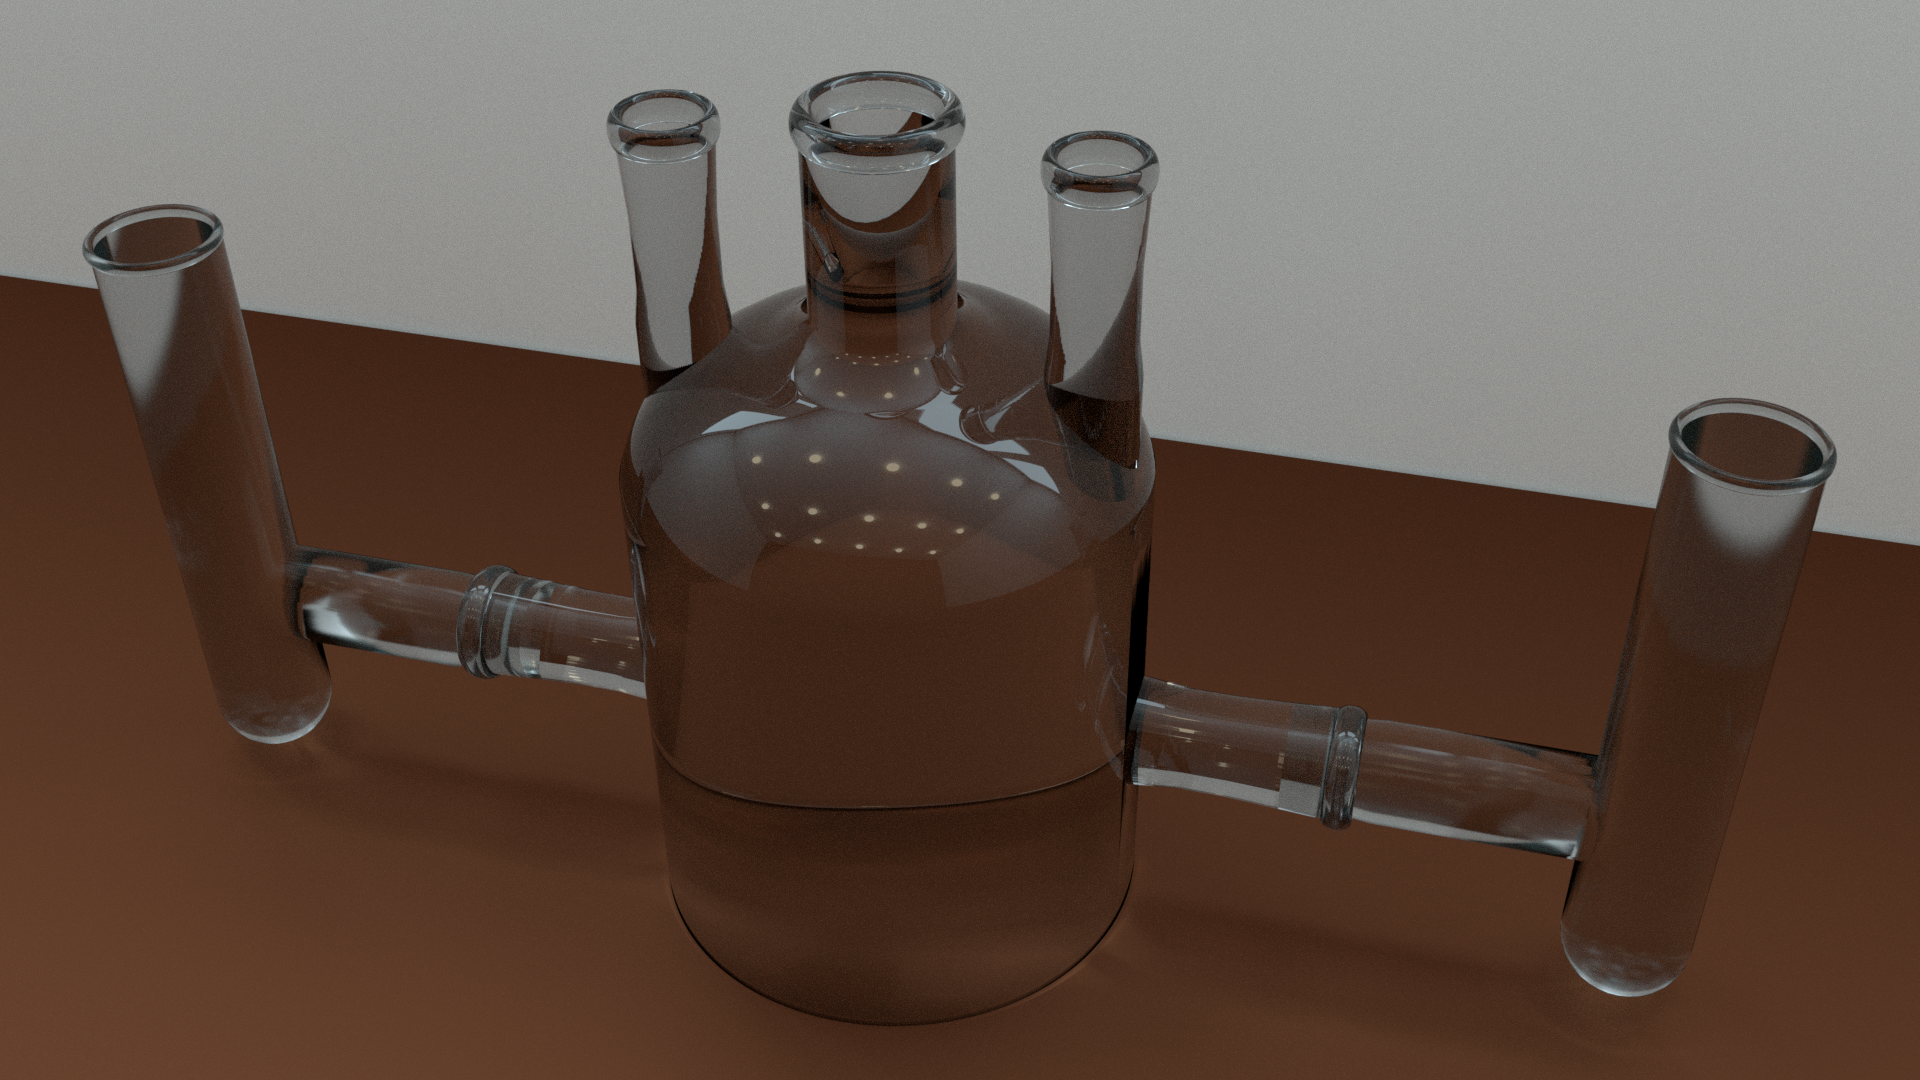 Rendered 3D model of a piece of electrochemical glassware (Blender)